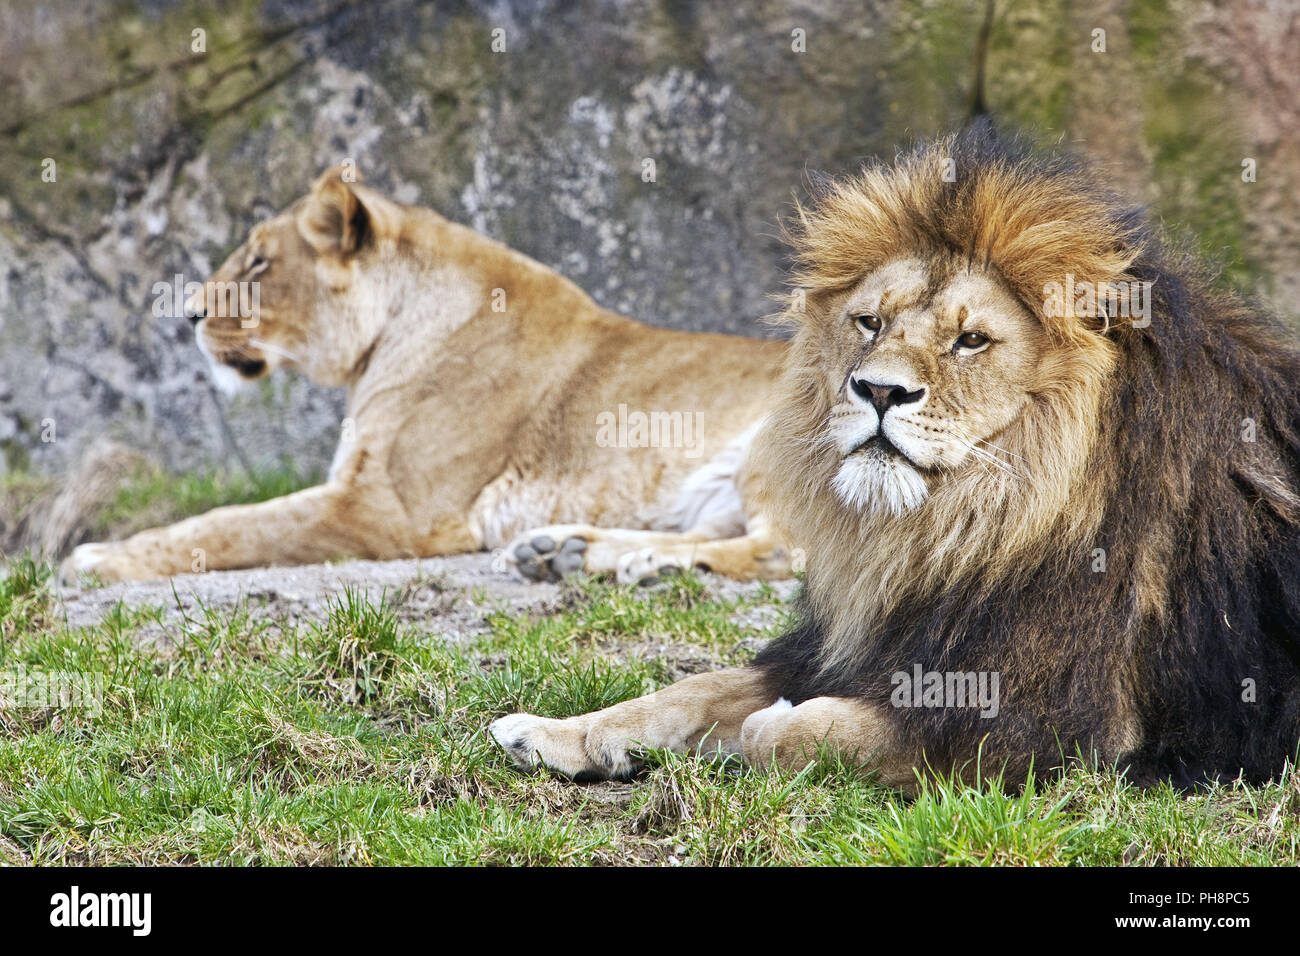 Two lions (Panthera leo), Wuppertal zoo - Stock Image